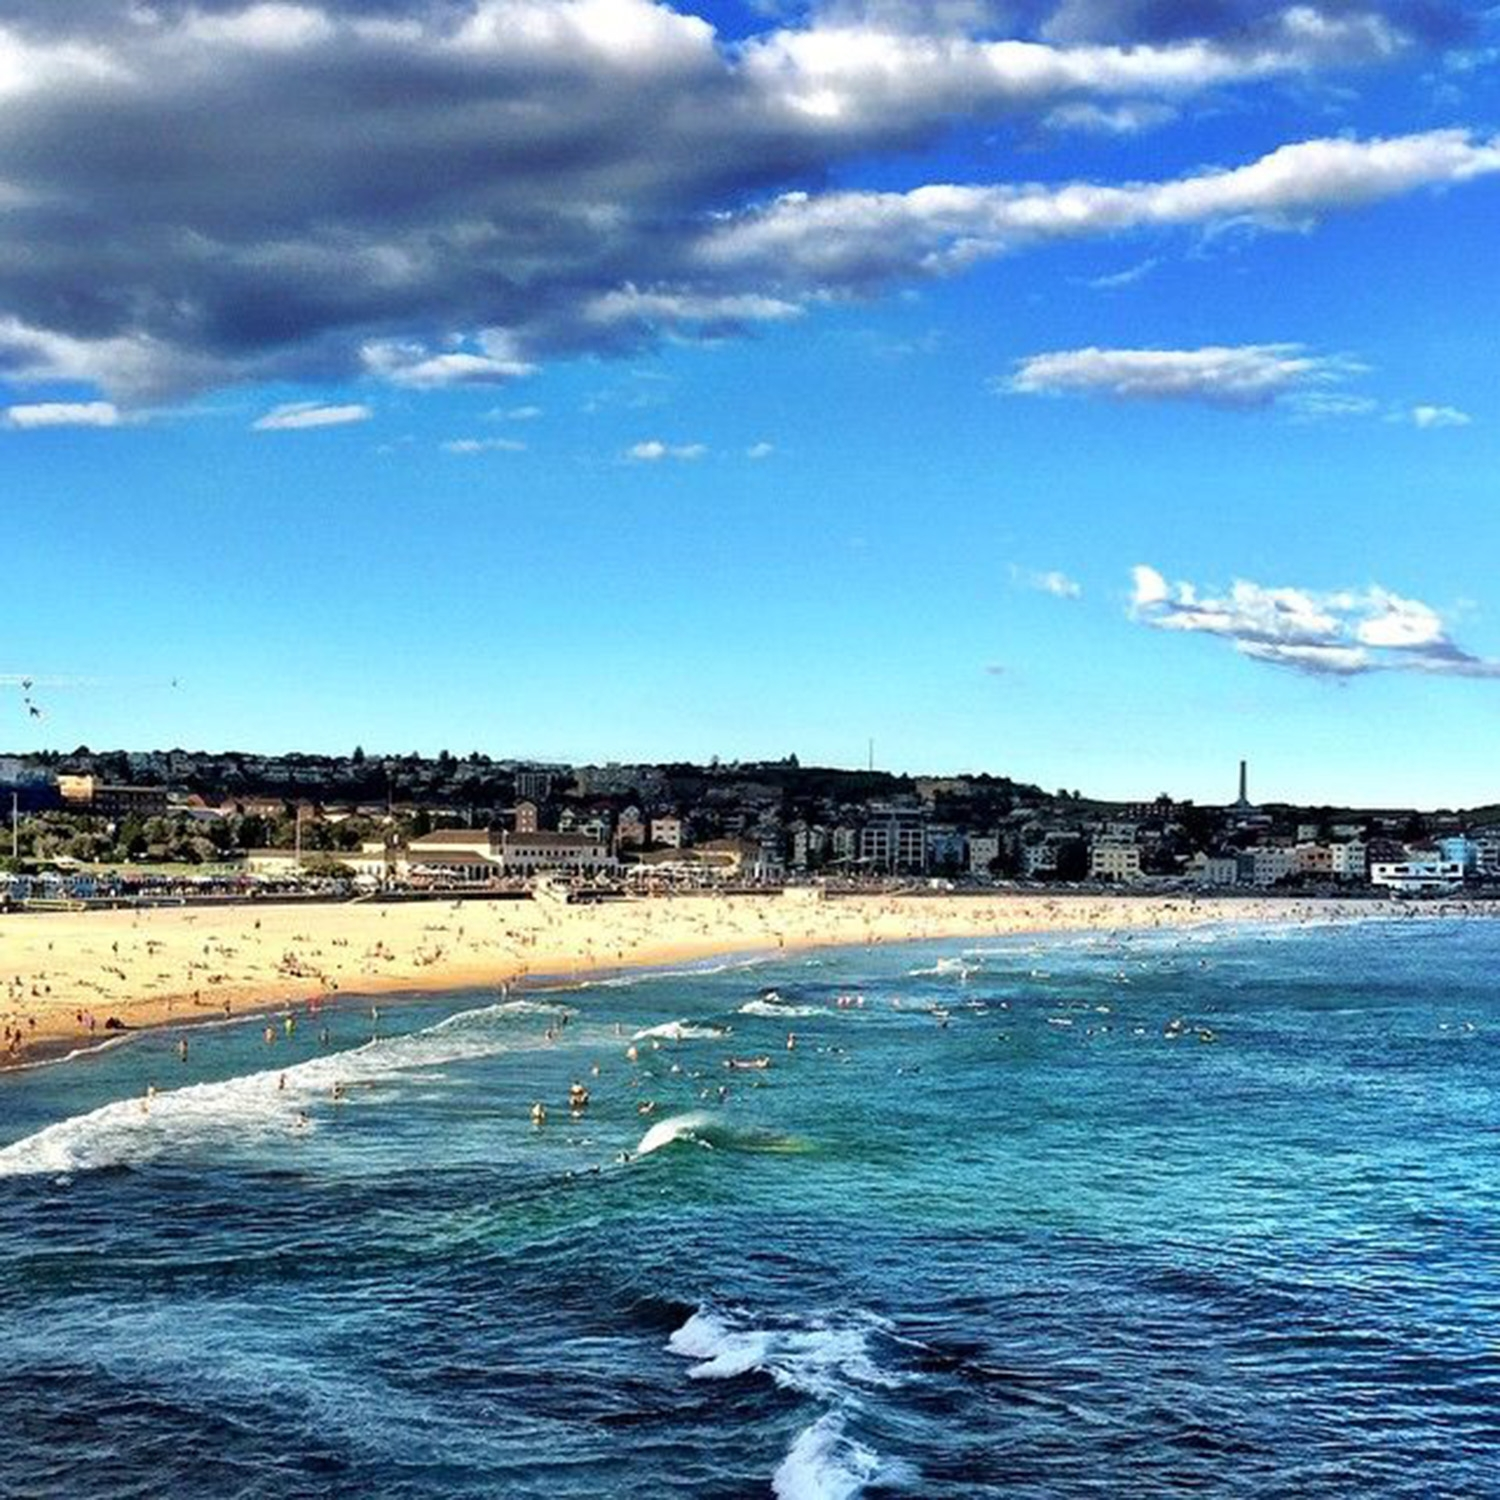 A warm evening at Bondi sees the beach filled with people – 30 degrees at 6:40pm